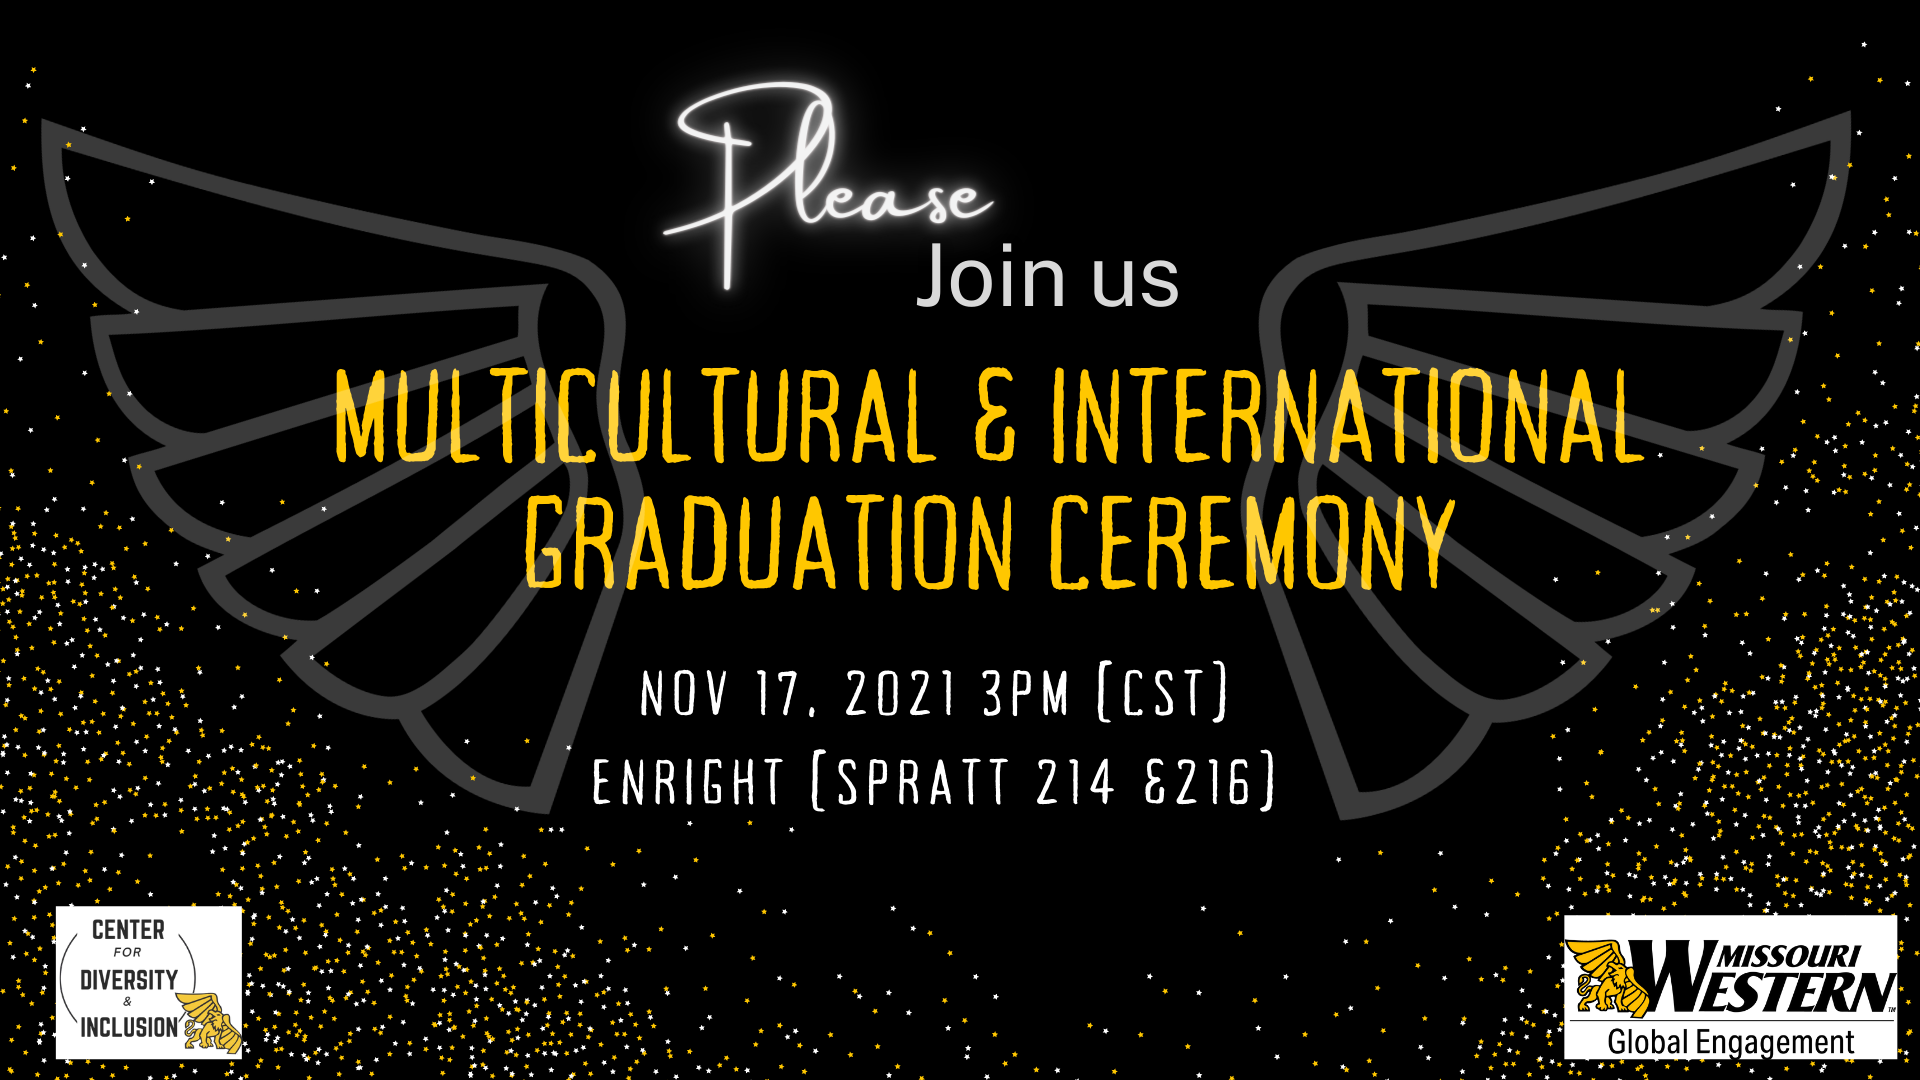 Multicultural and International graduation ceremony flyer with a design of wings in the background